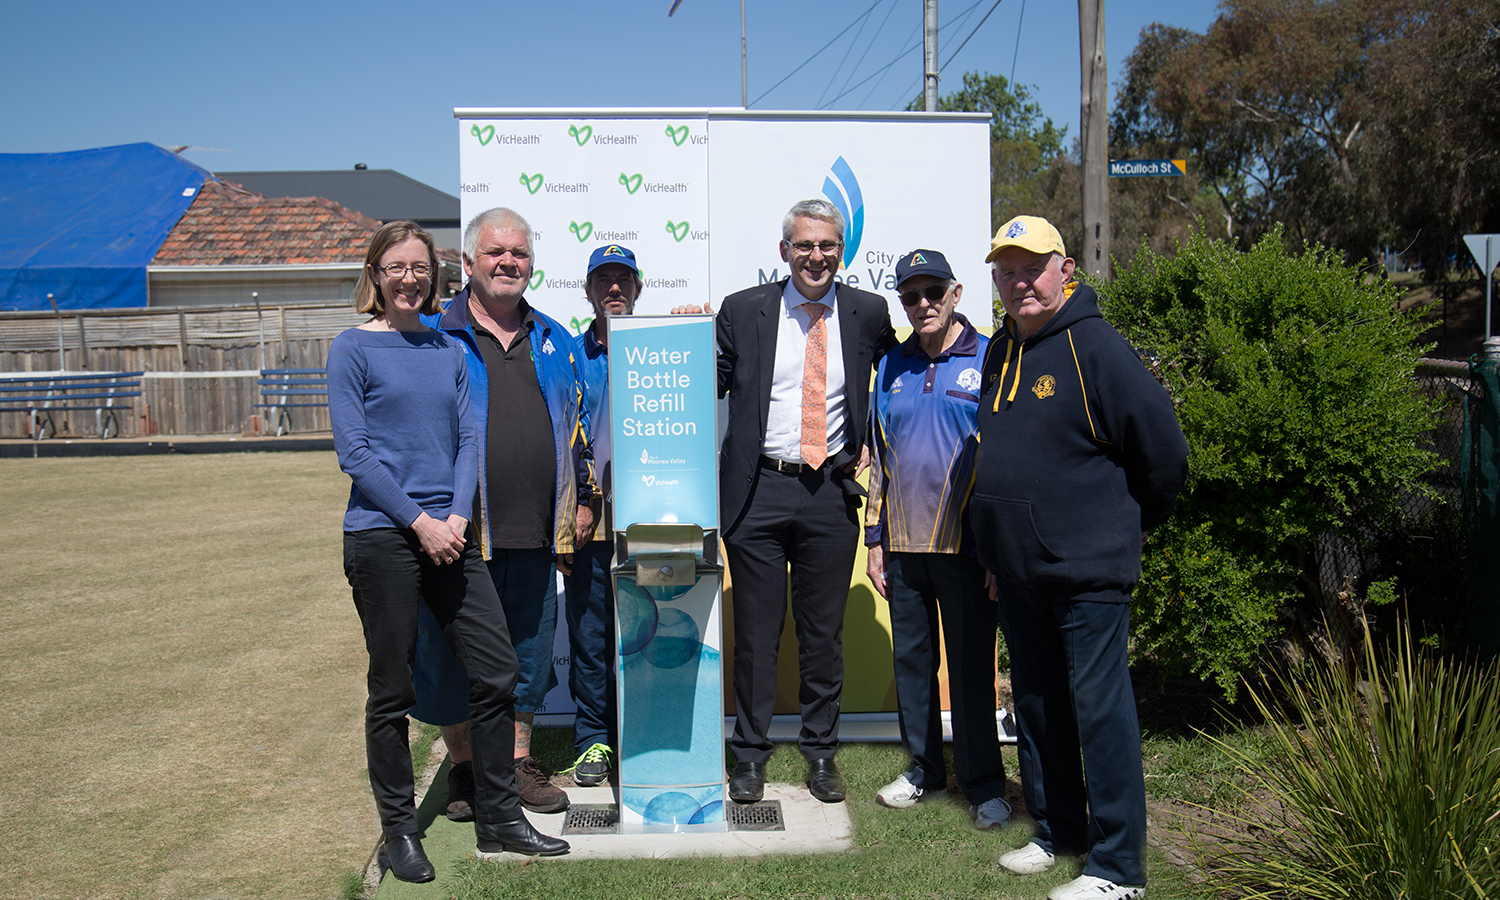 Moonee Valley locals pictured next to a Drinking Fountain and Bottle Refill Station